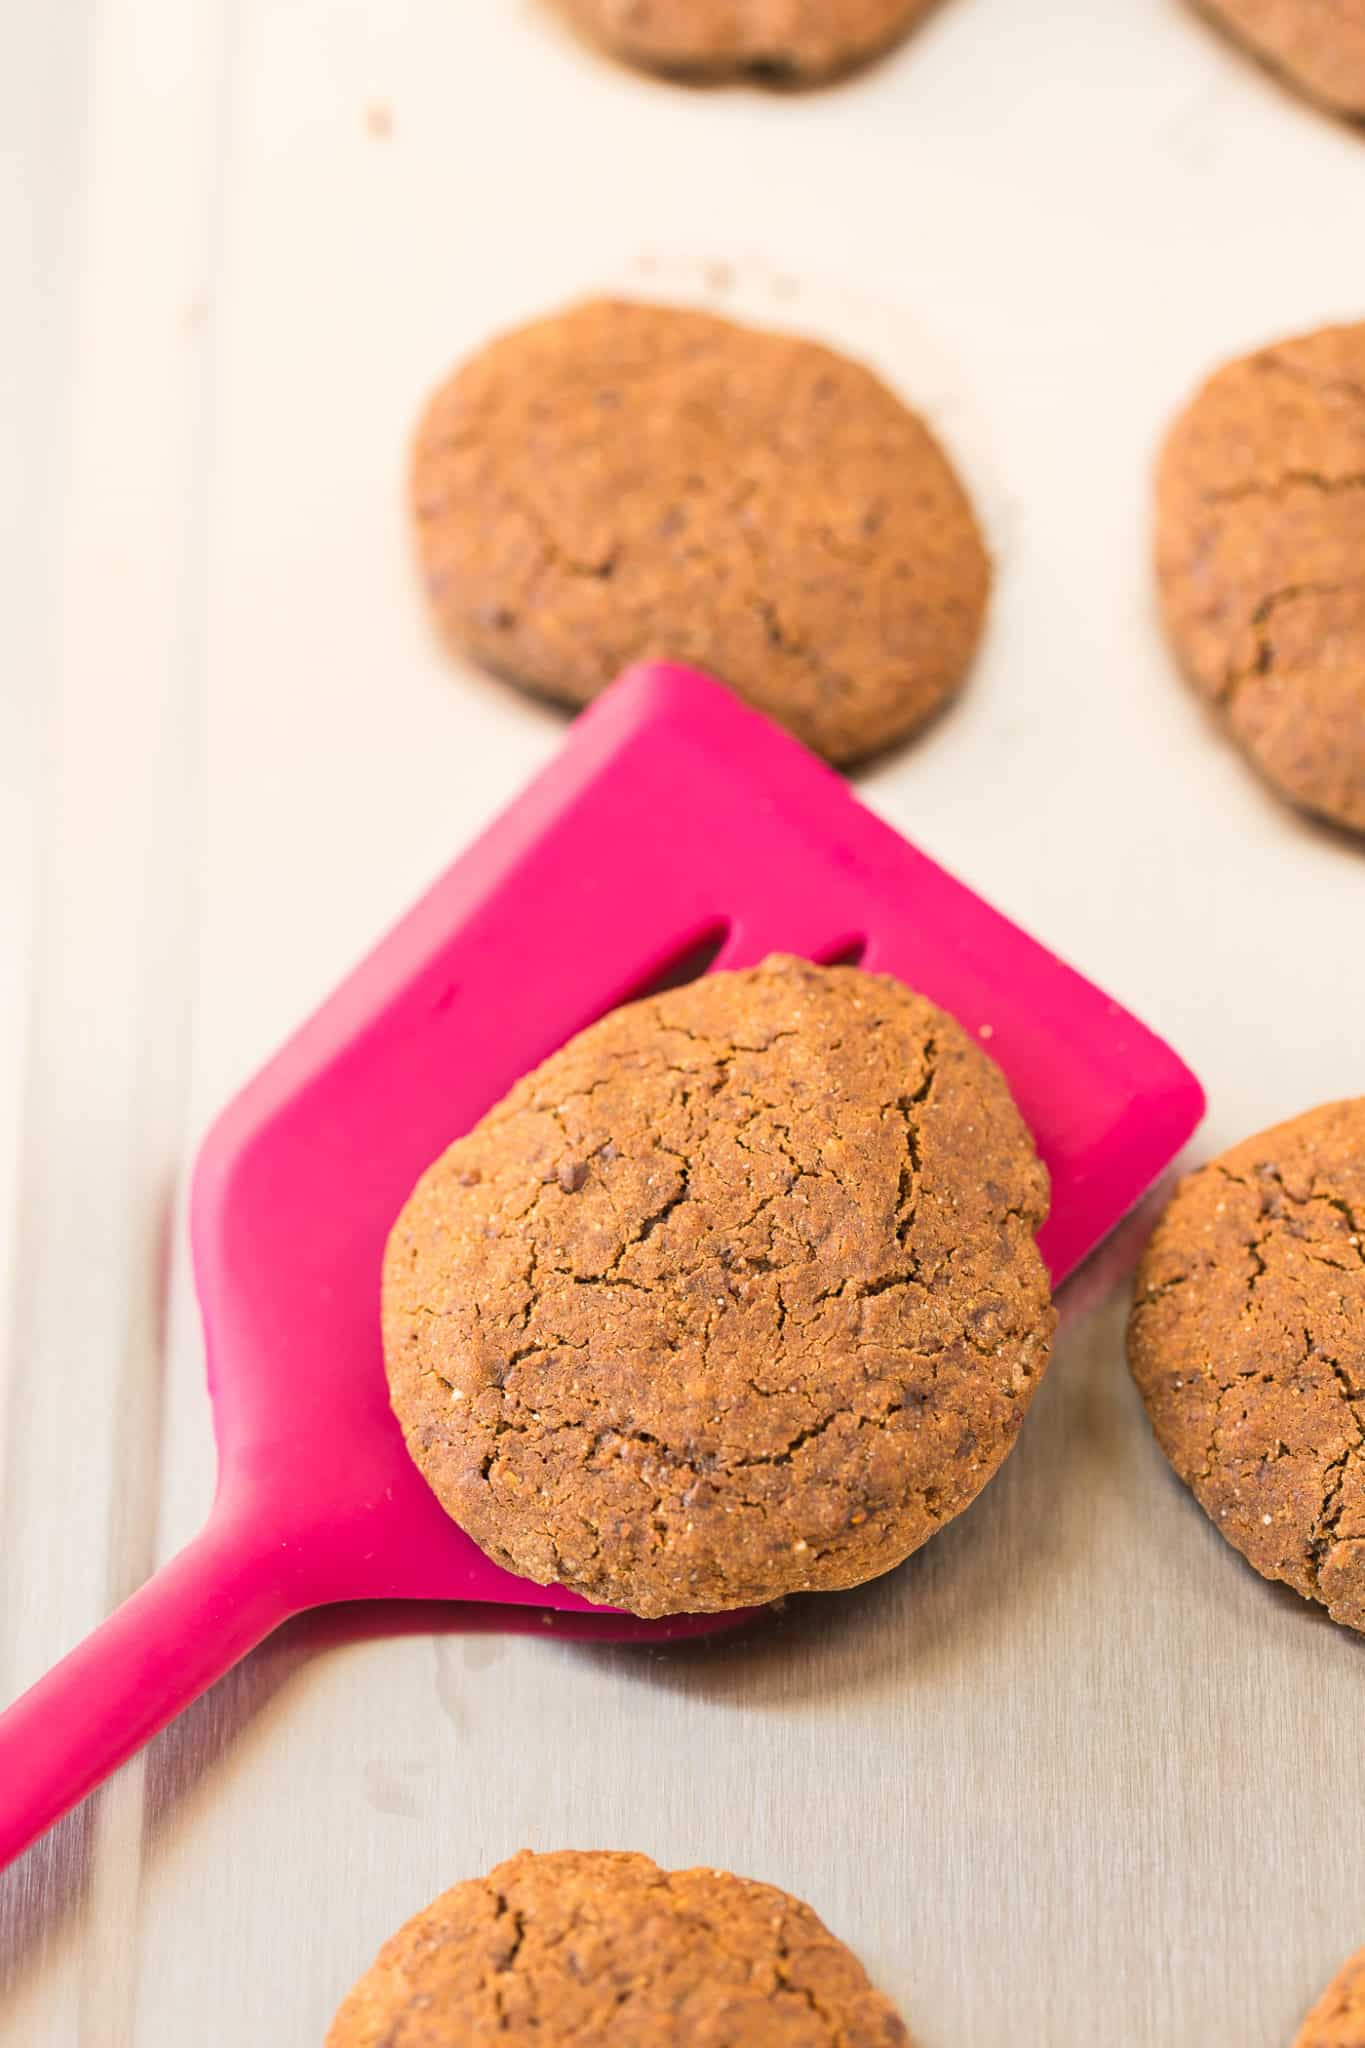 molasses cookies done baking on a baking sheet